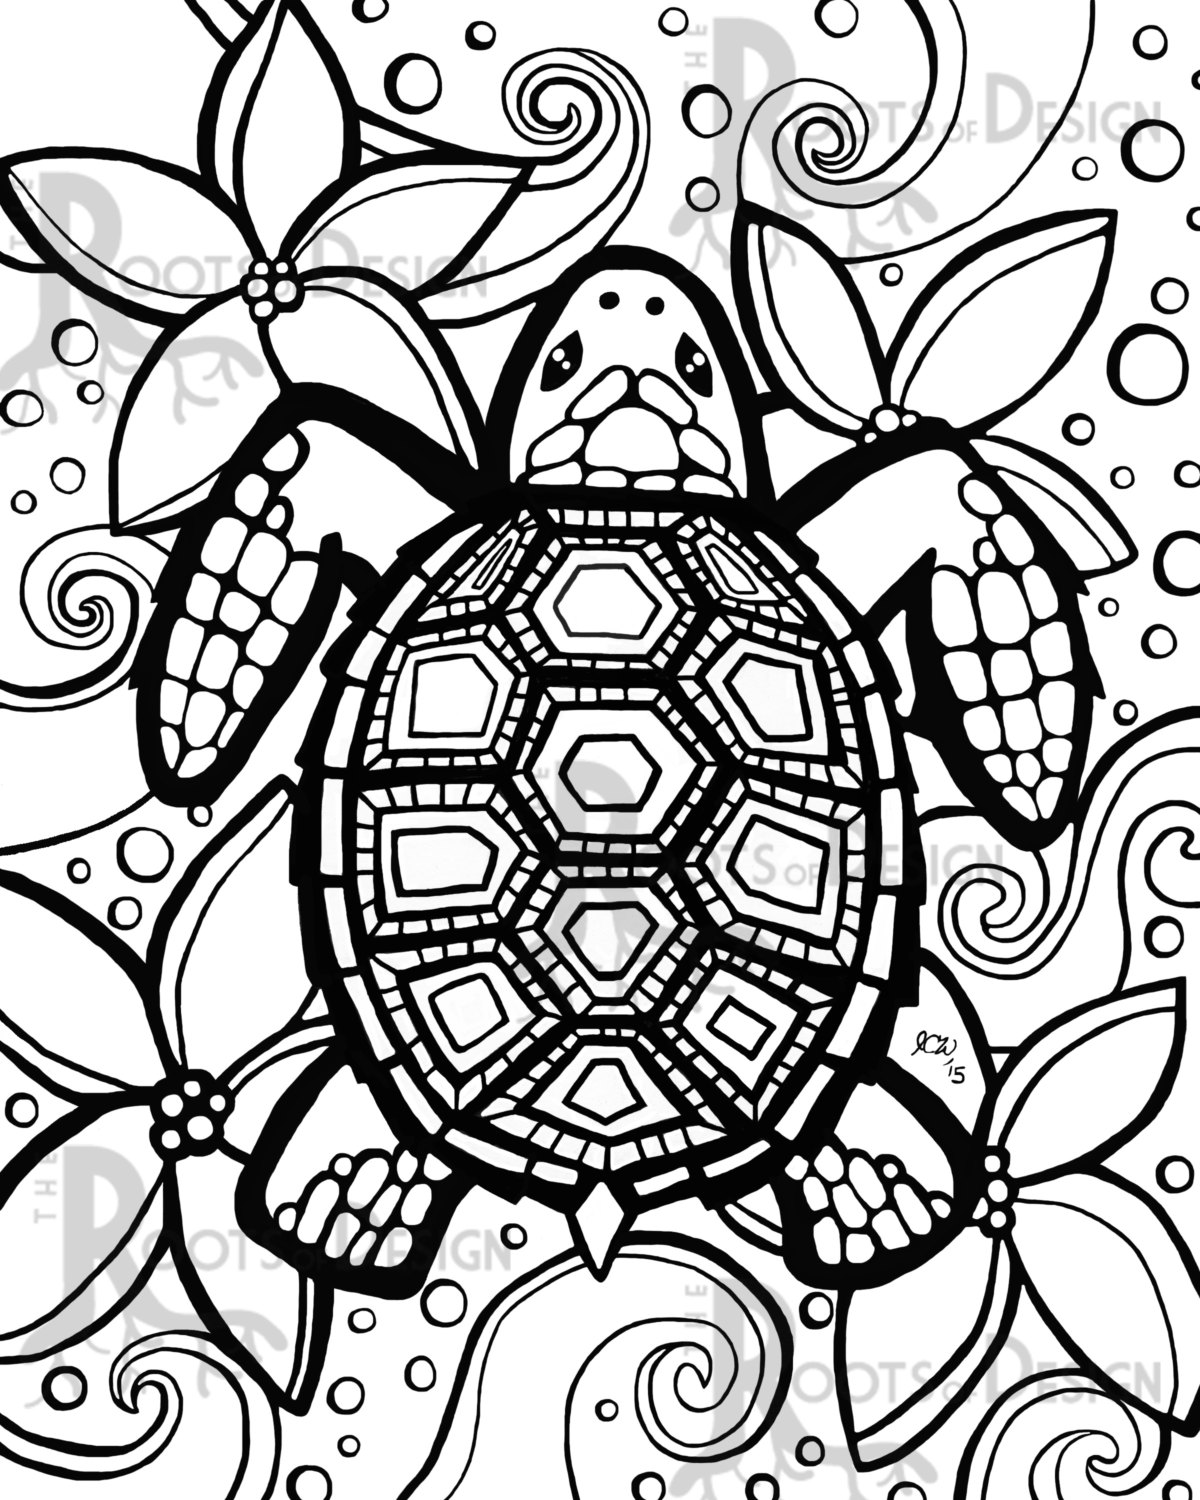 tortoise coloring page turtles free to color for kids turtles kids coloring pages tortoise page coloring